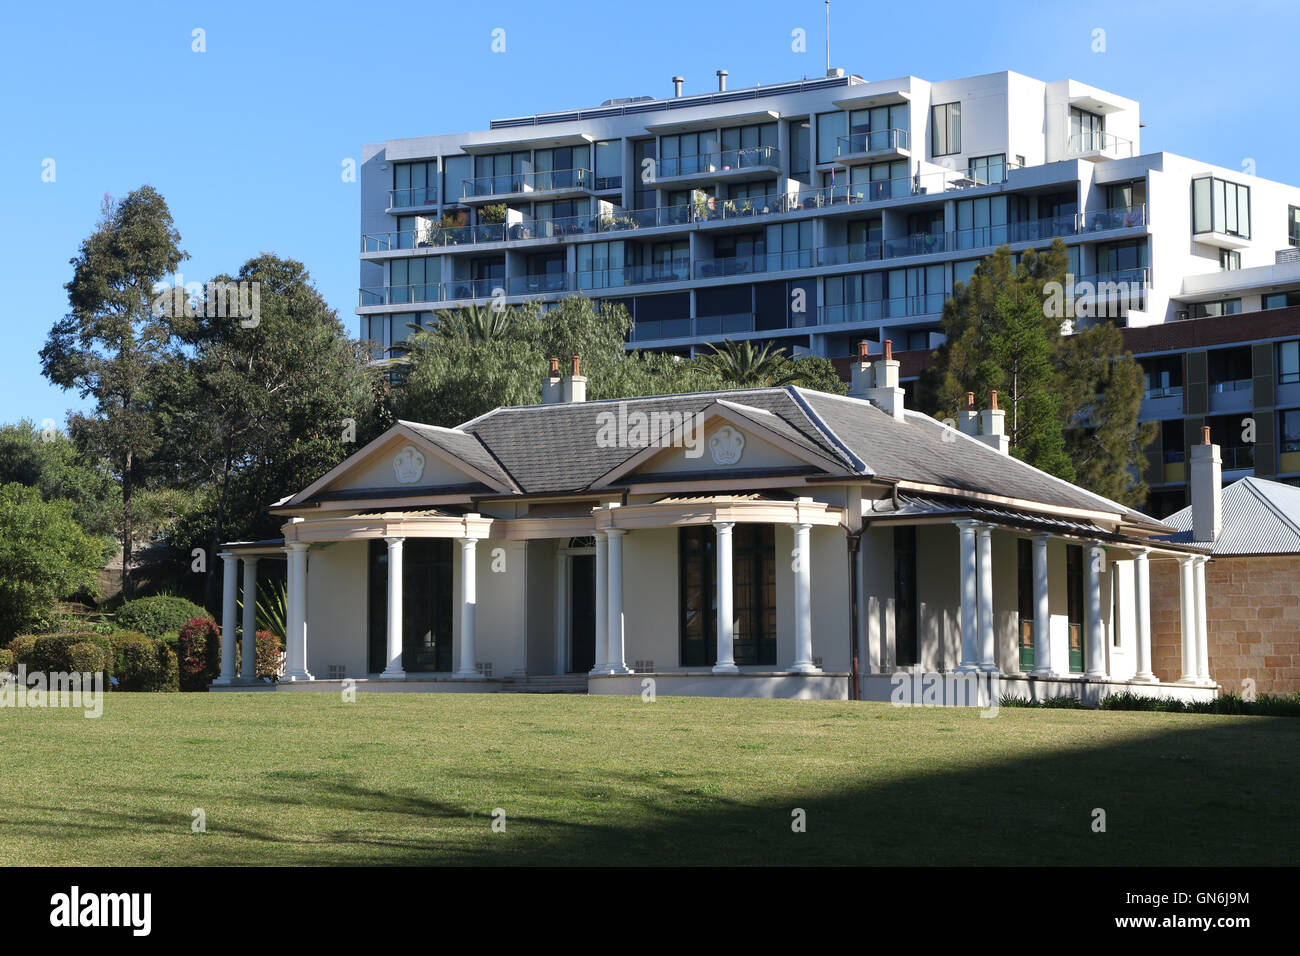 Tempe House in Discovery Park at Discovery Point, Wolli Creek Sydney, Australia. - Stock Image